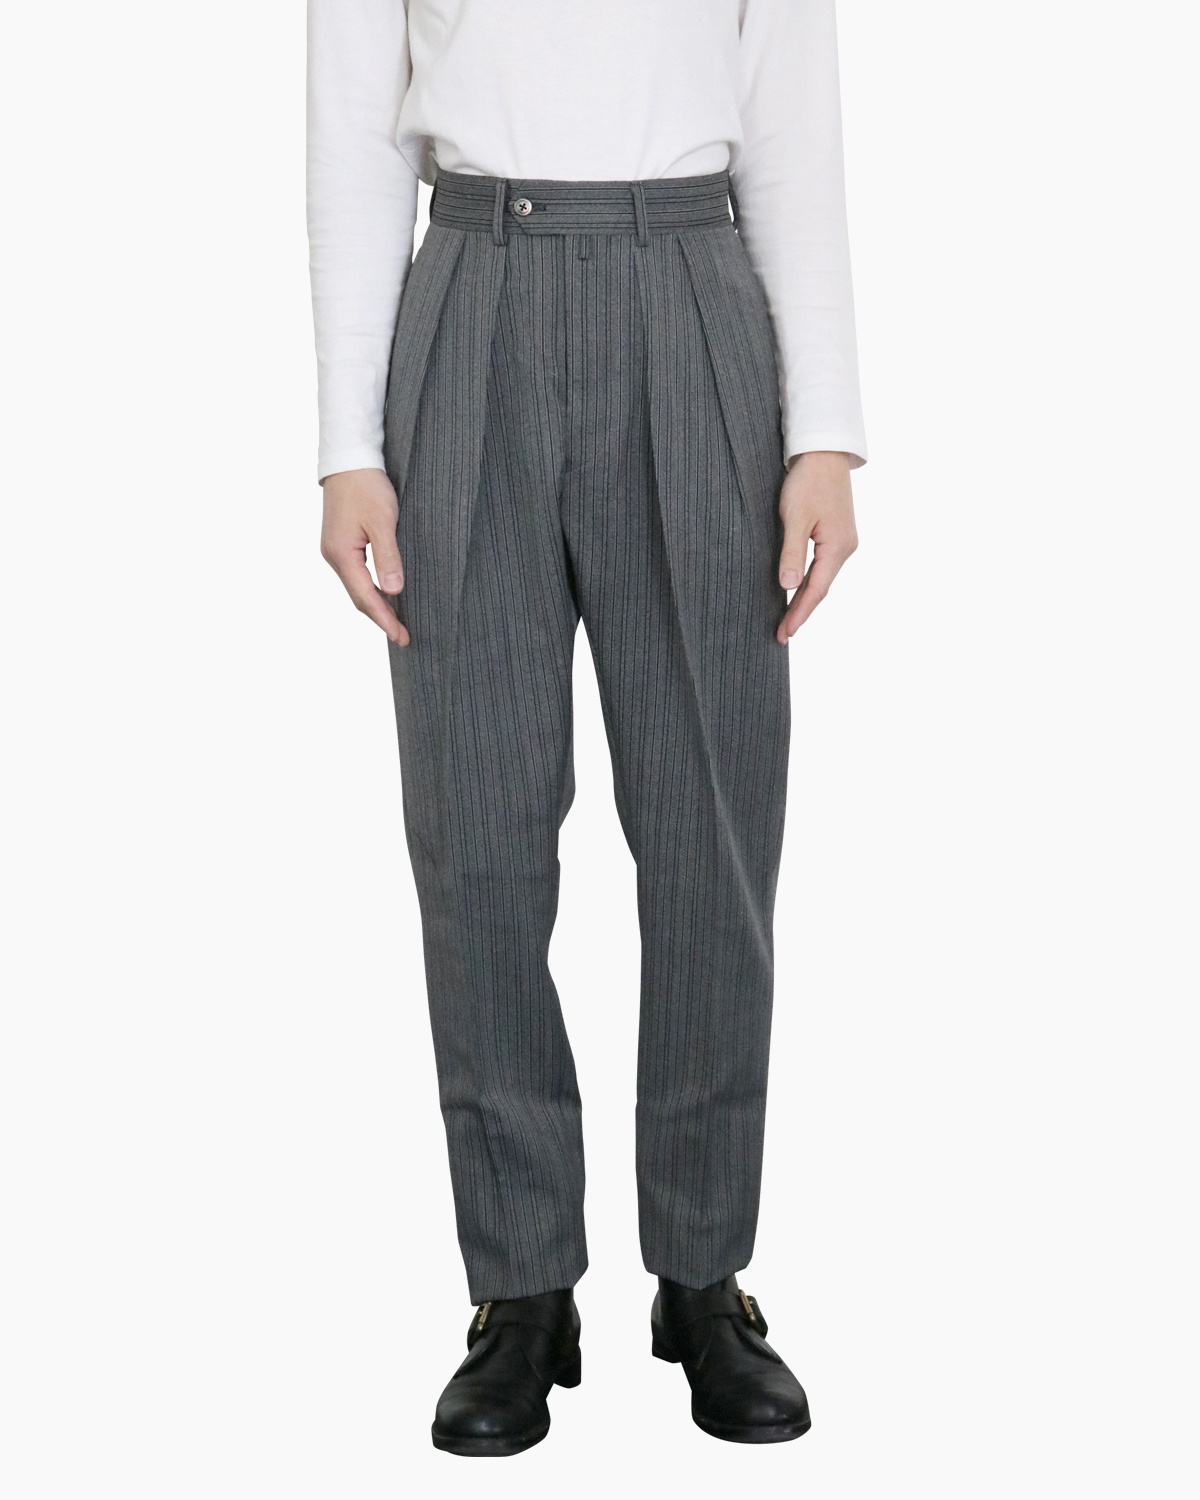 DIRECTORS TAPERED - Gray NEAT